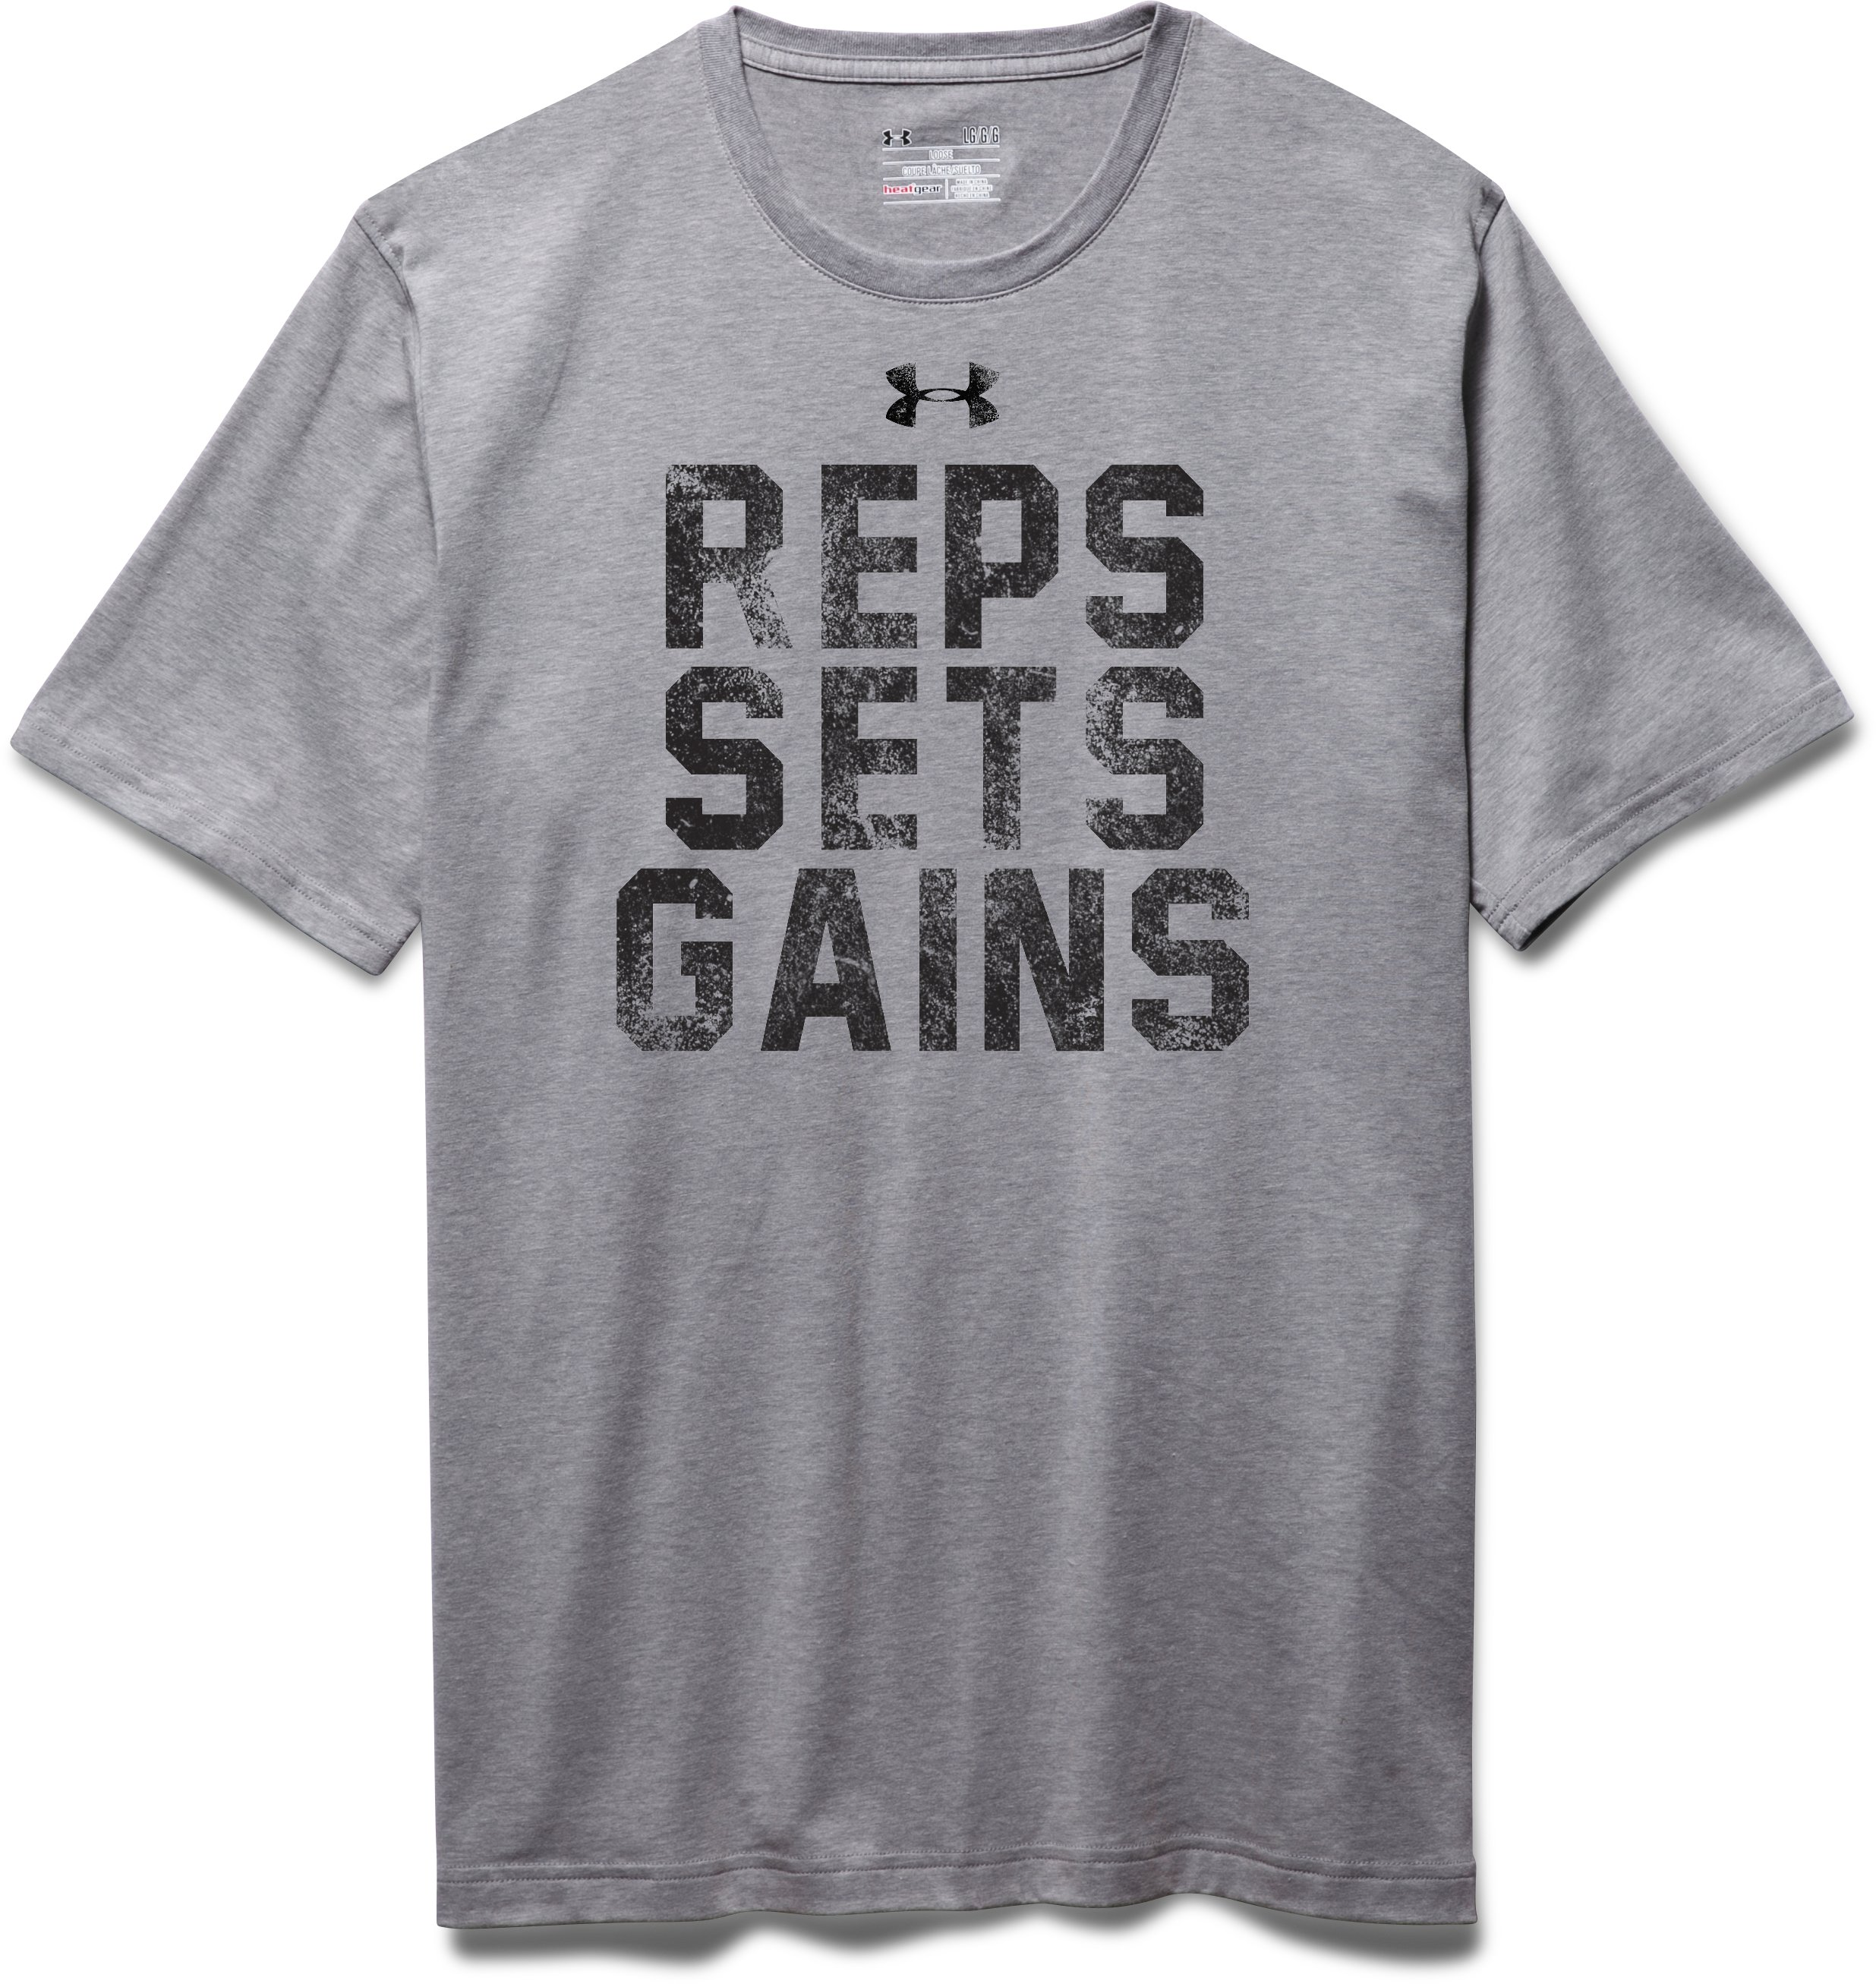 Men's UA Reps, Sets, Gains T-Shirt, True Gray Heather